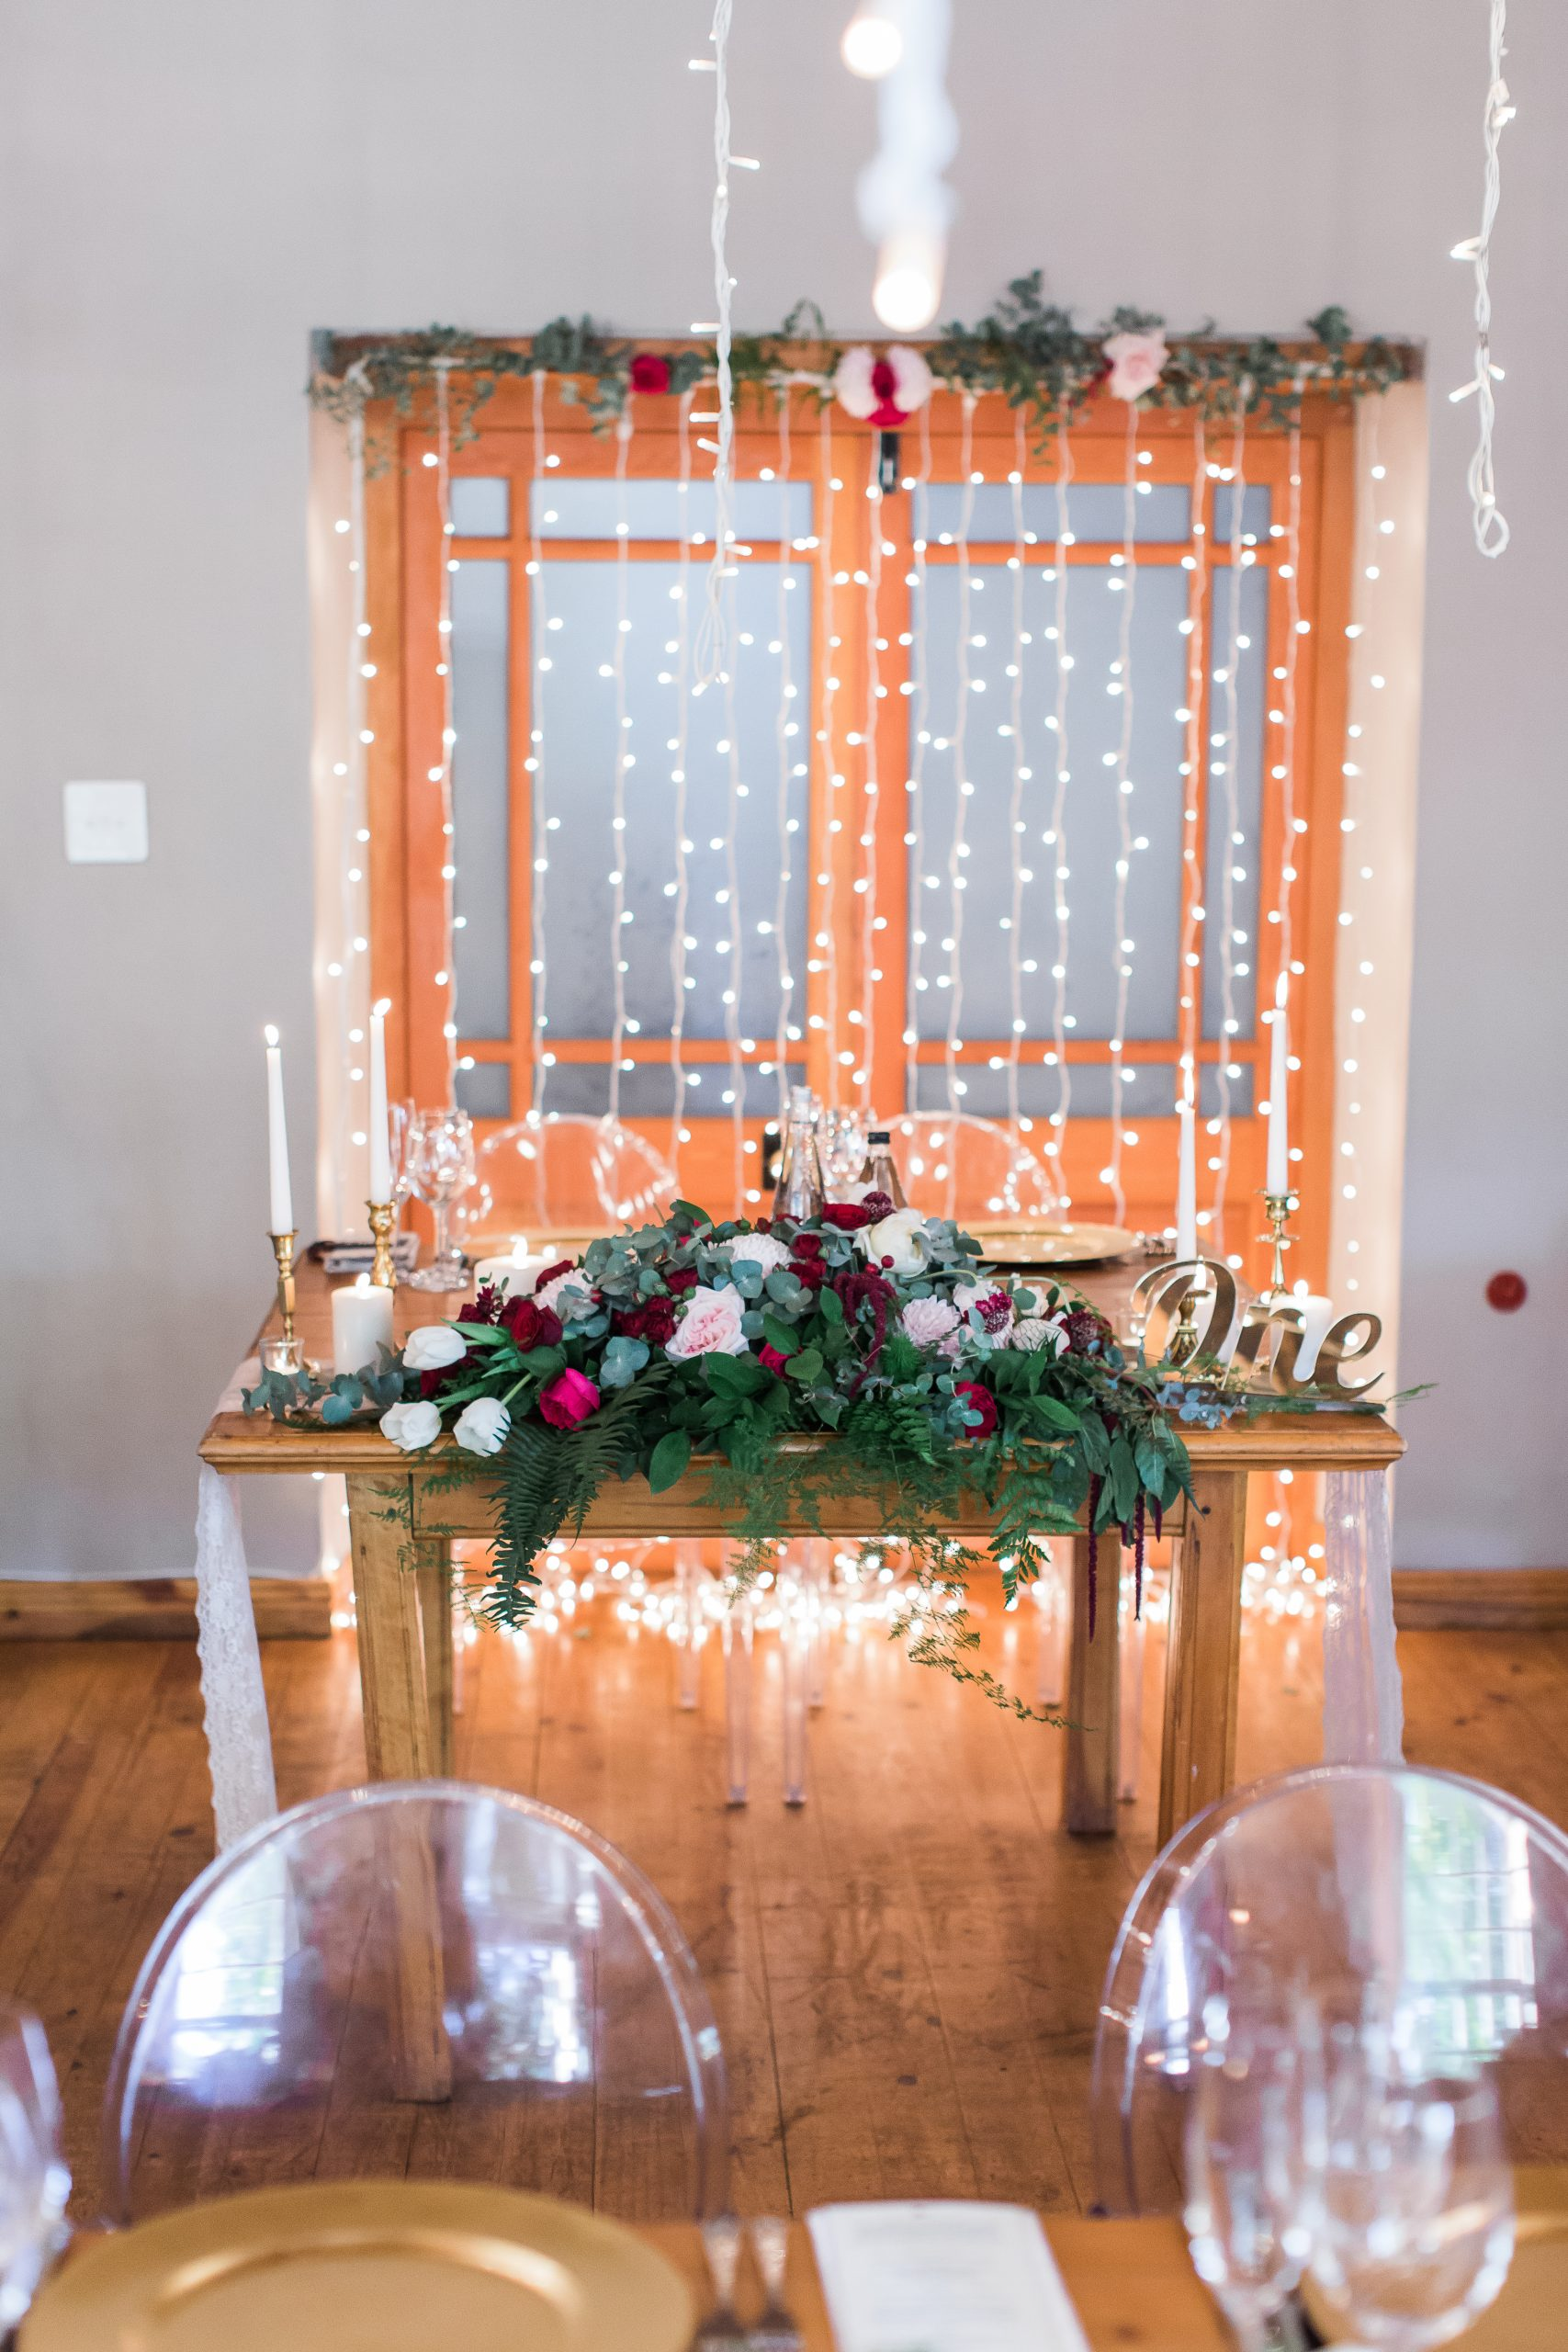 Romantic Wedding Backdrops With String Lighting scaled